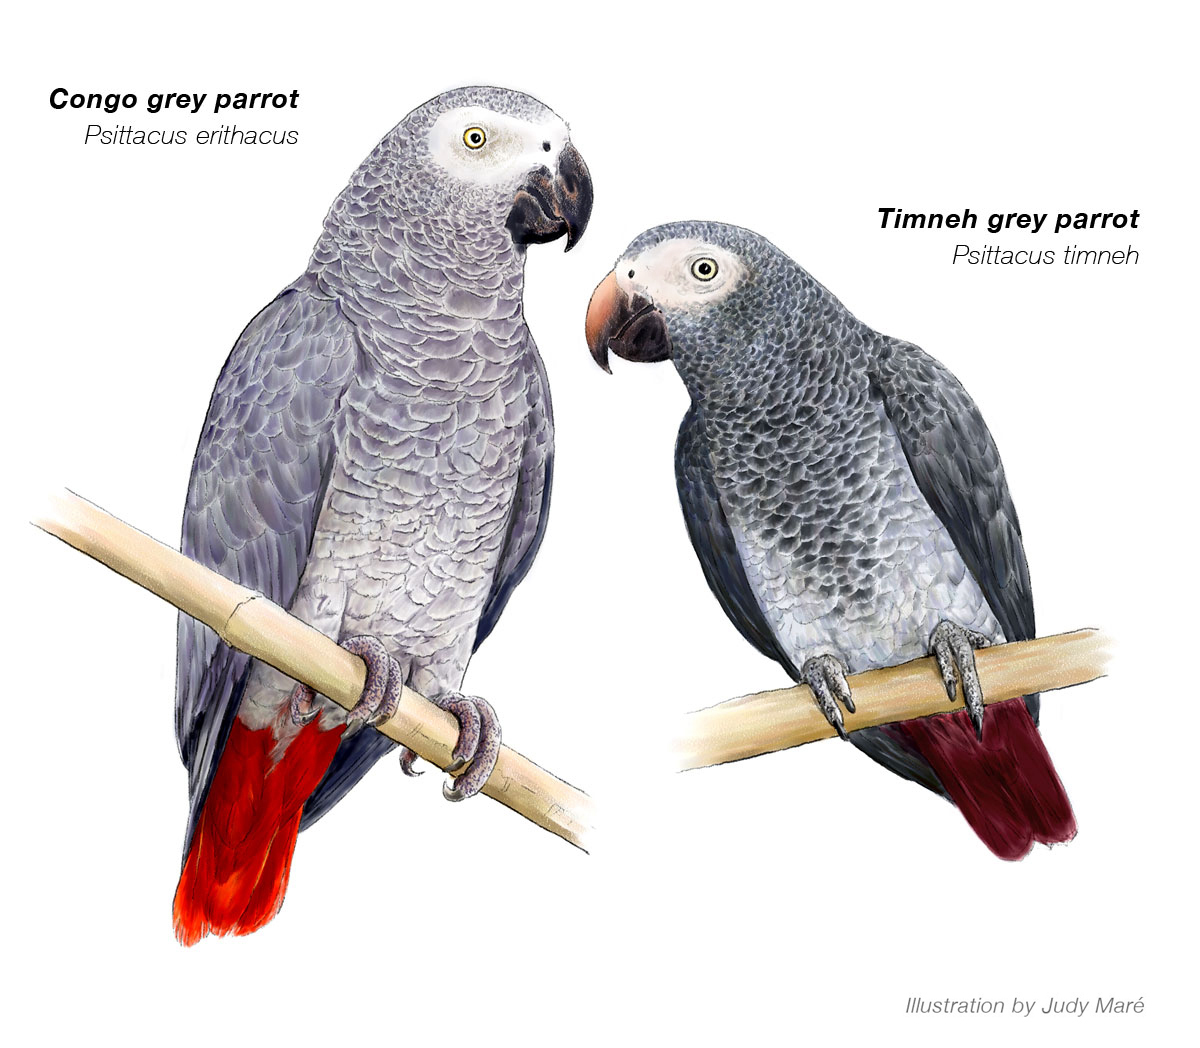 grey-parrot-illustration-africa-geographic